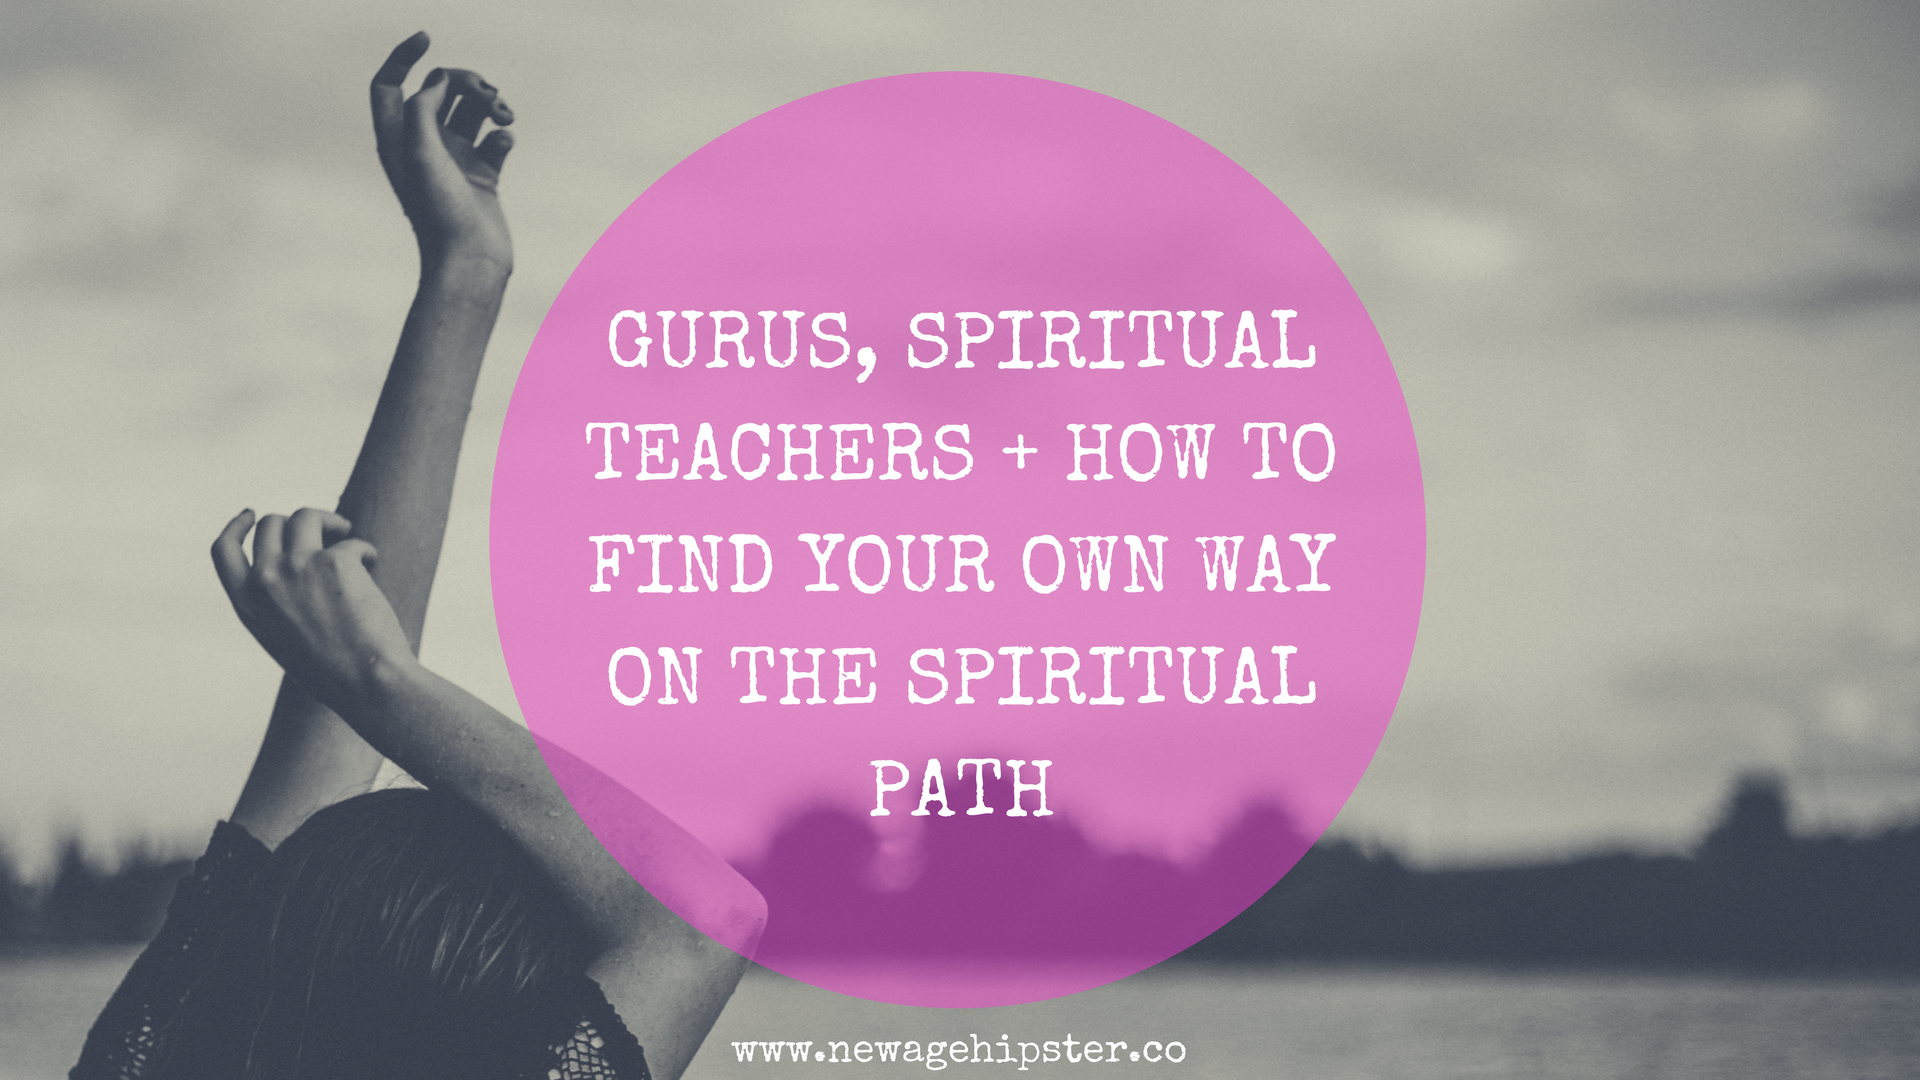 gurus, spiritual teachers + how to find your own way on the spiritual path x